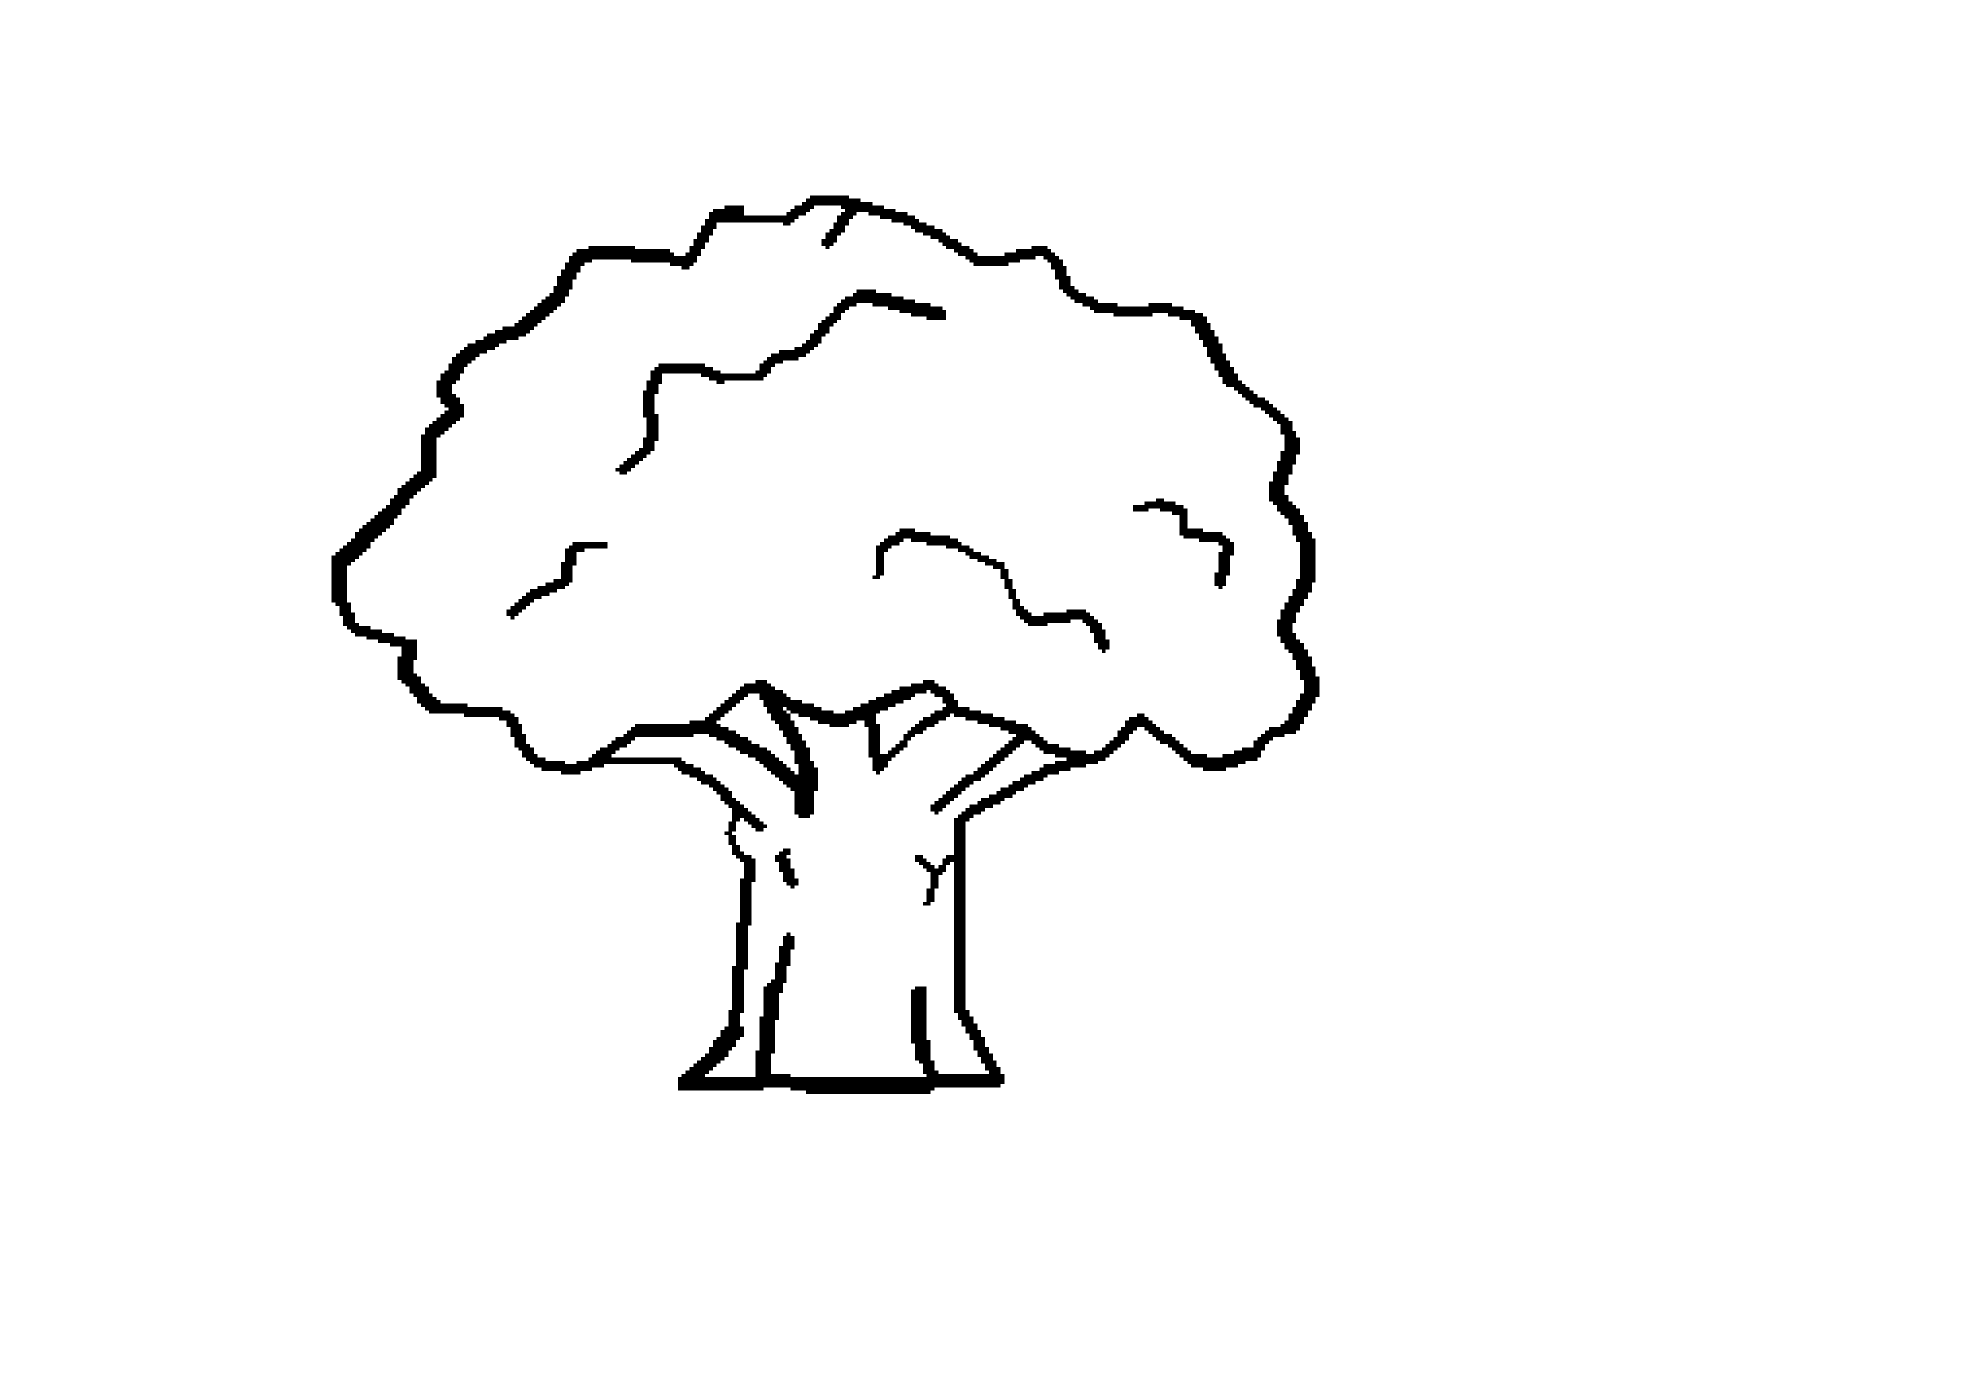 Tree Clip Art Black And White - ClipArt Best